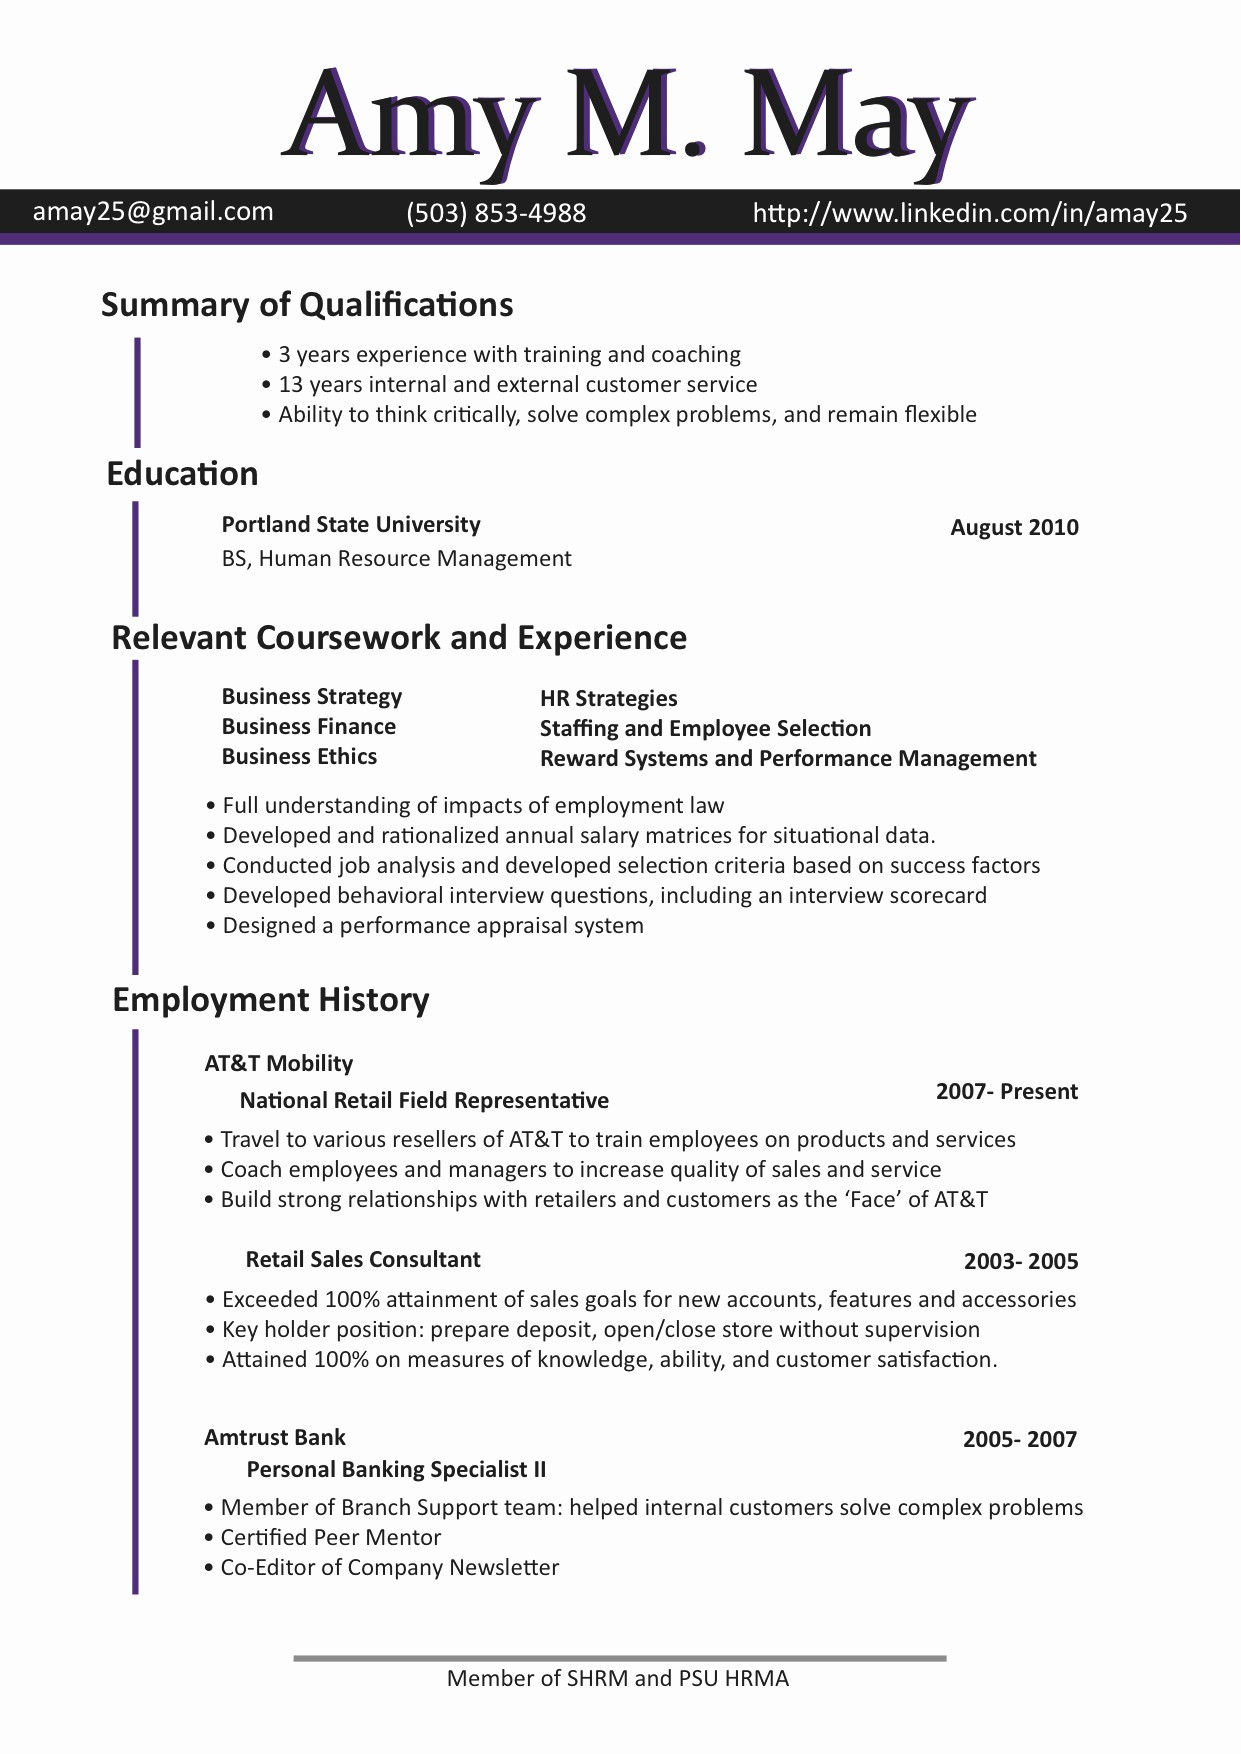 Job Search Resume - Example Search Resumes for Free for A Employer Vcuregistry